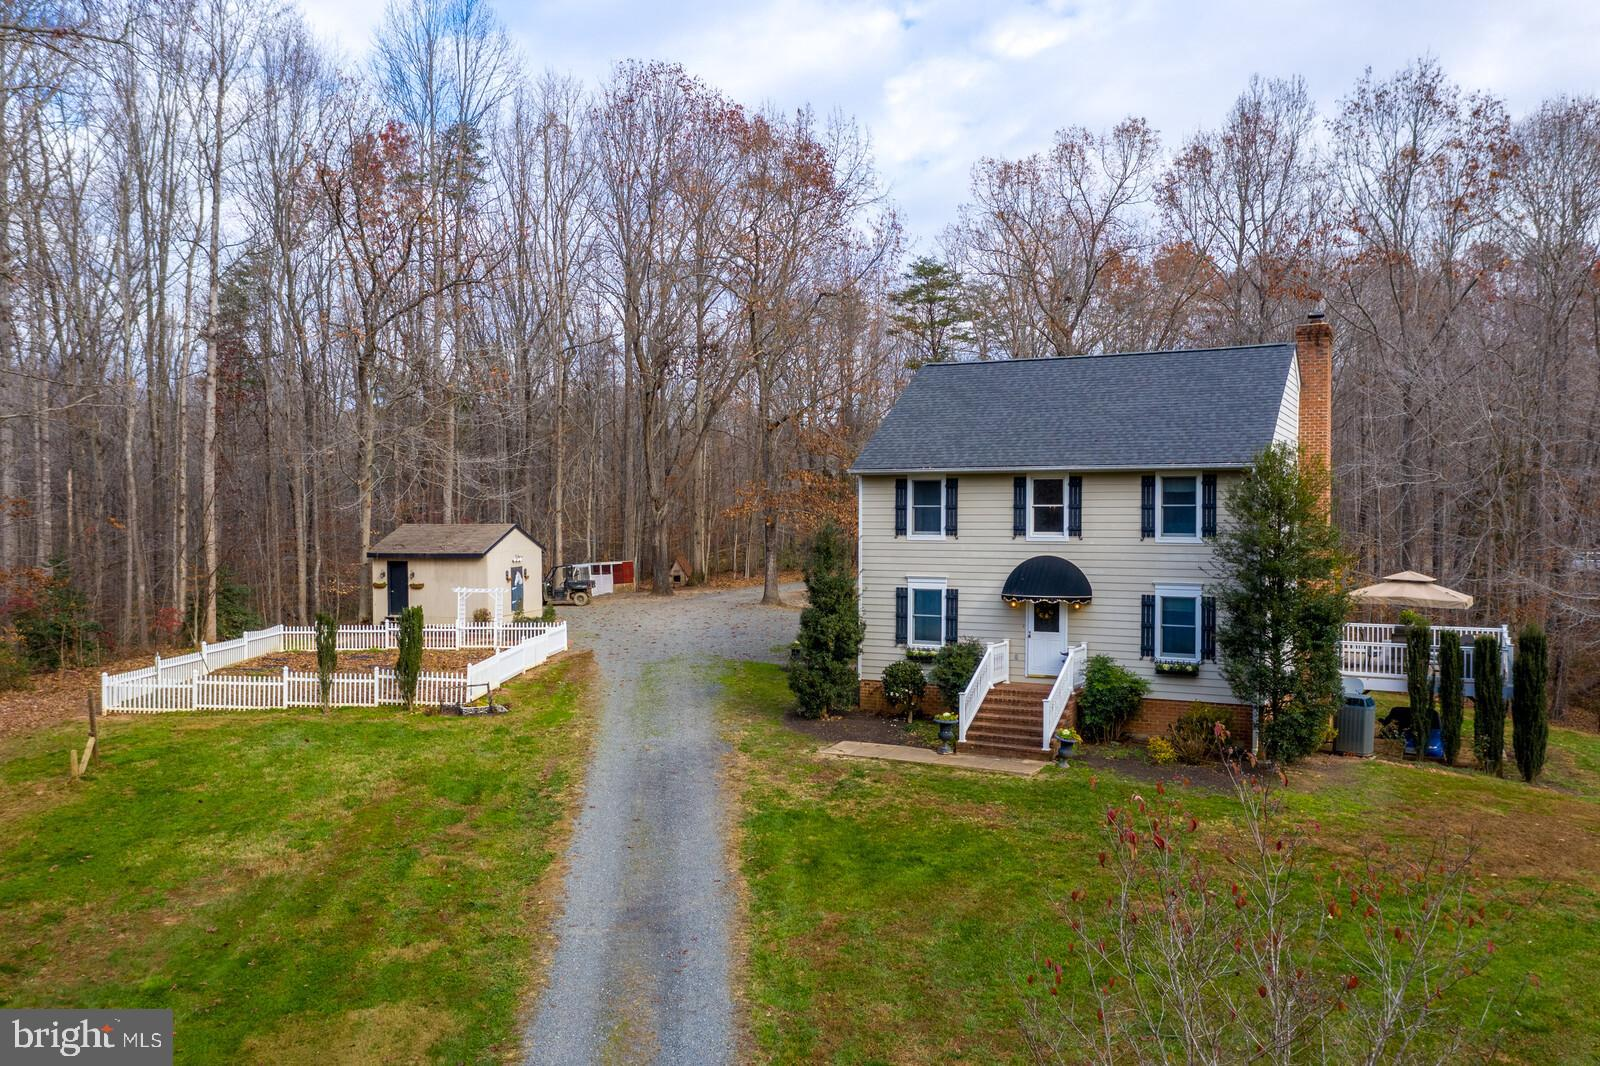 Wow! This property has it all, and then some. 4 bedroom 3 bath colonial on almost 18 acres, large 4